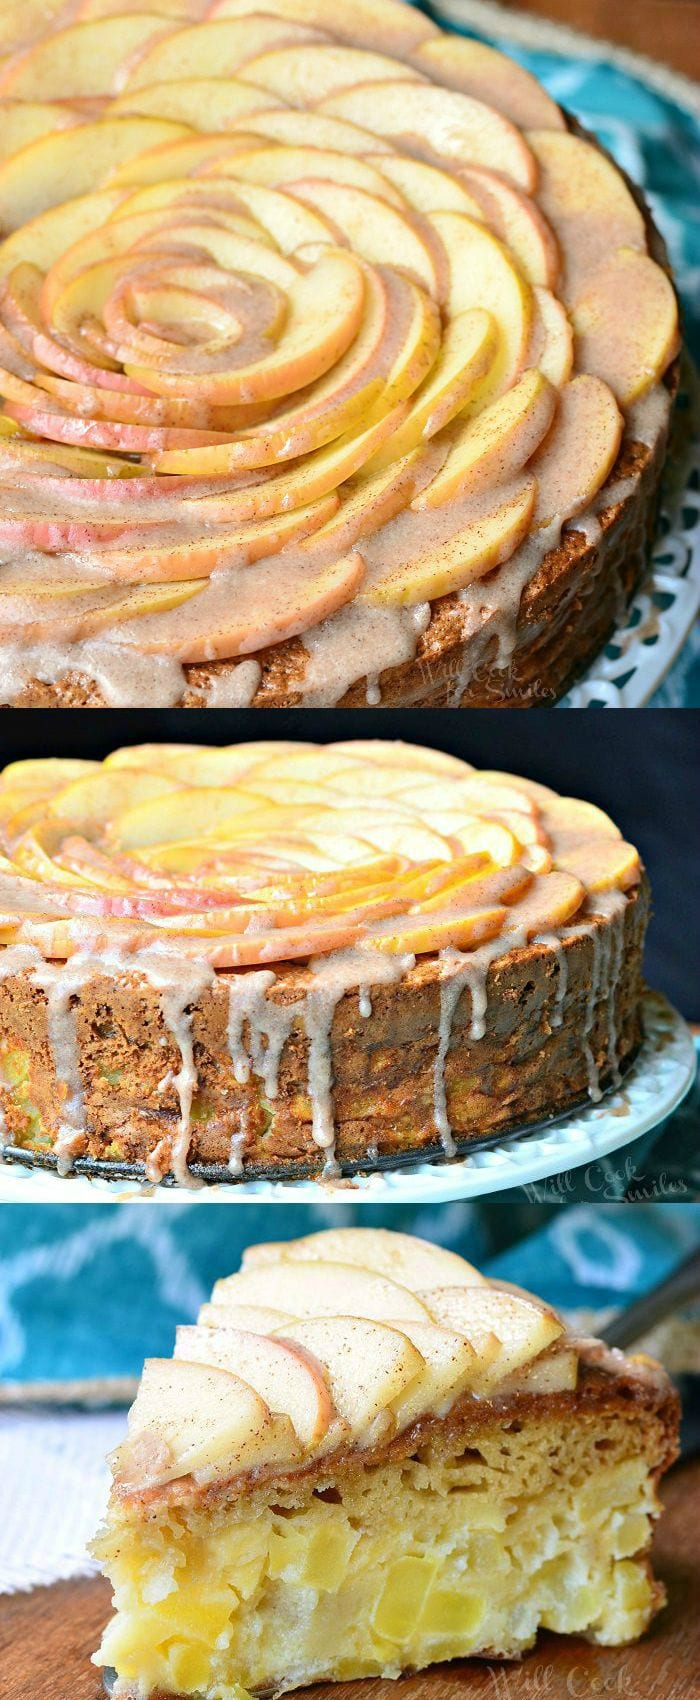 Cinnamon Glazed Apple Cake 6 from willcookforsmiles.com